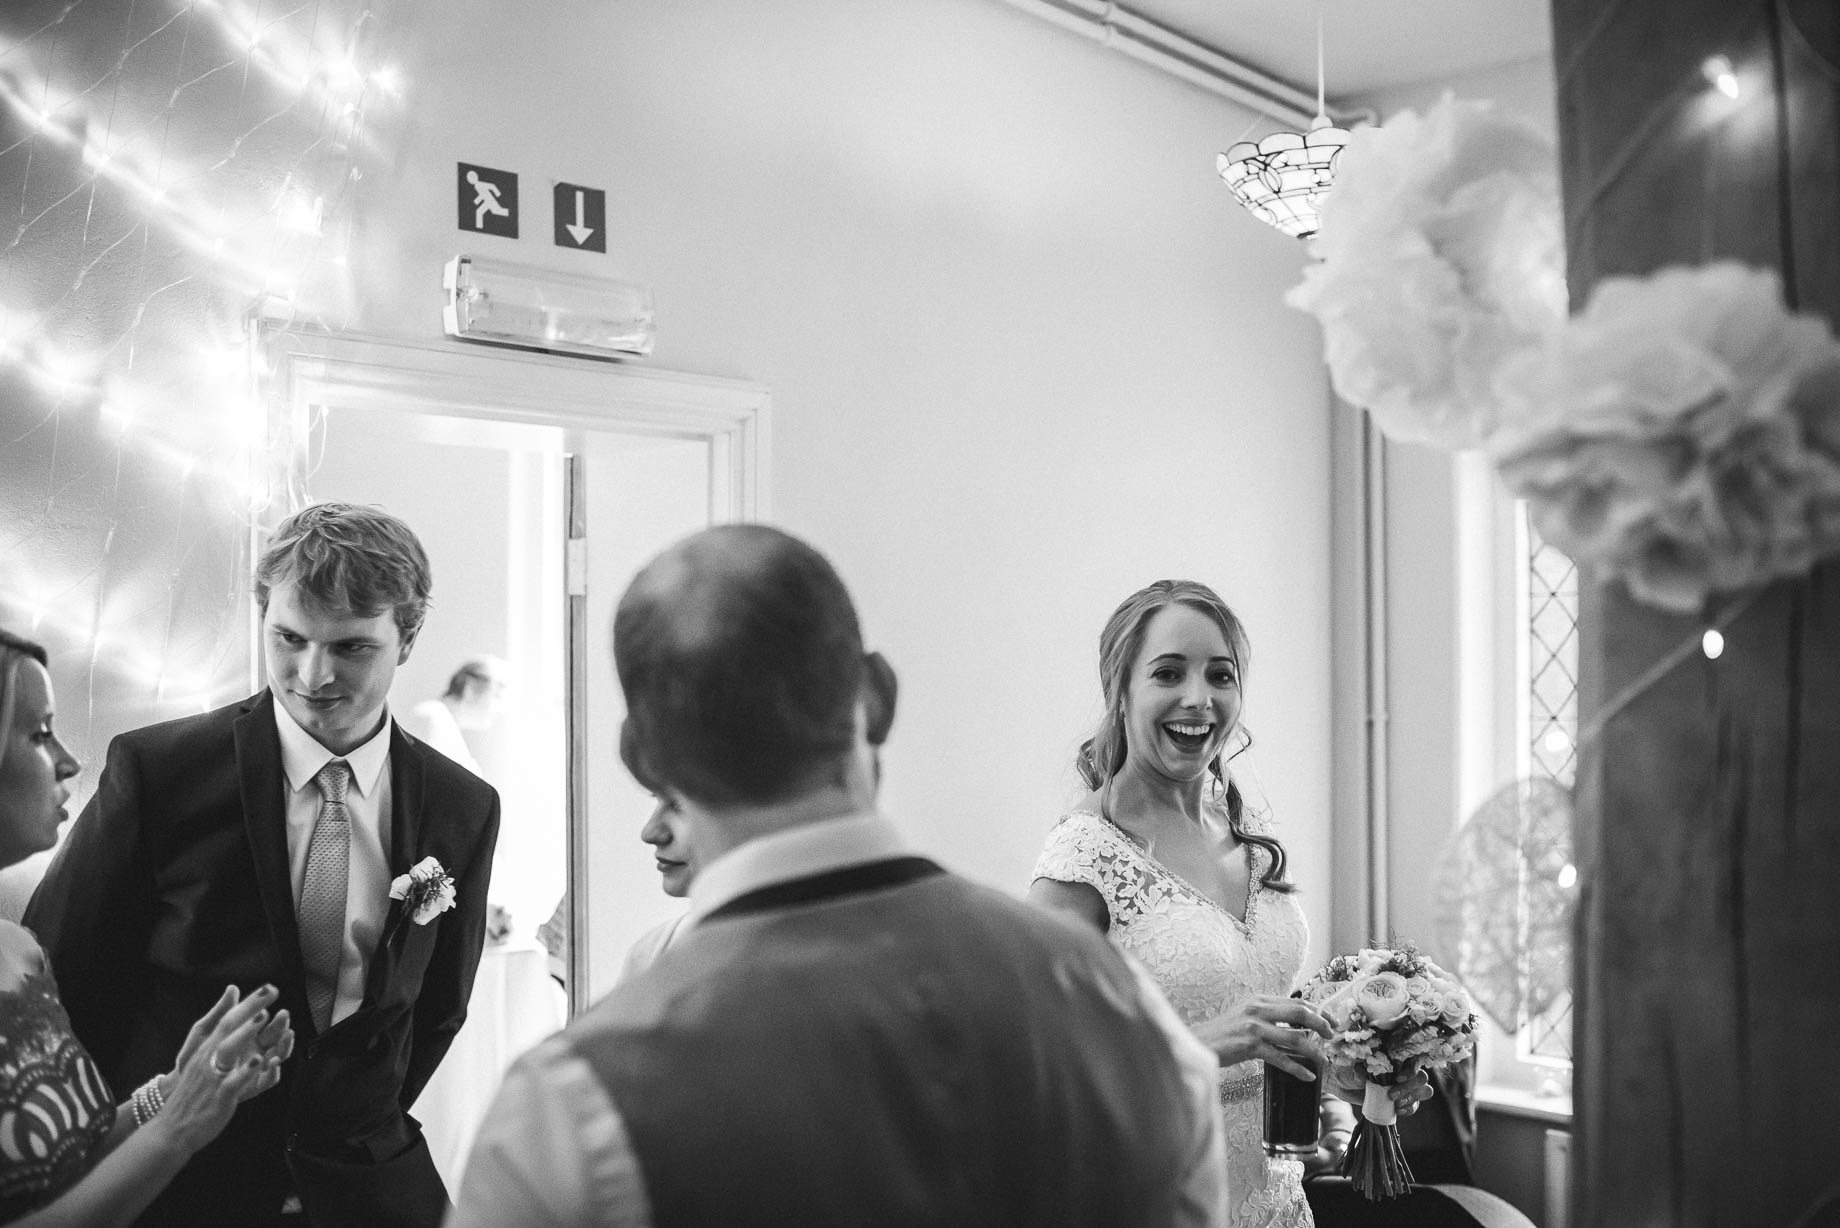 Hampshire wedding photography by Guy Collier - Emily and Tom (151 of 164)